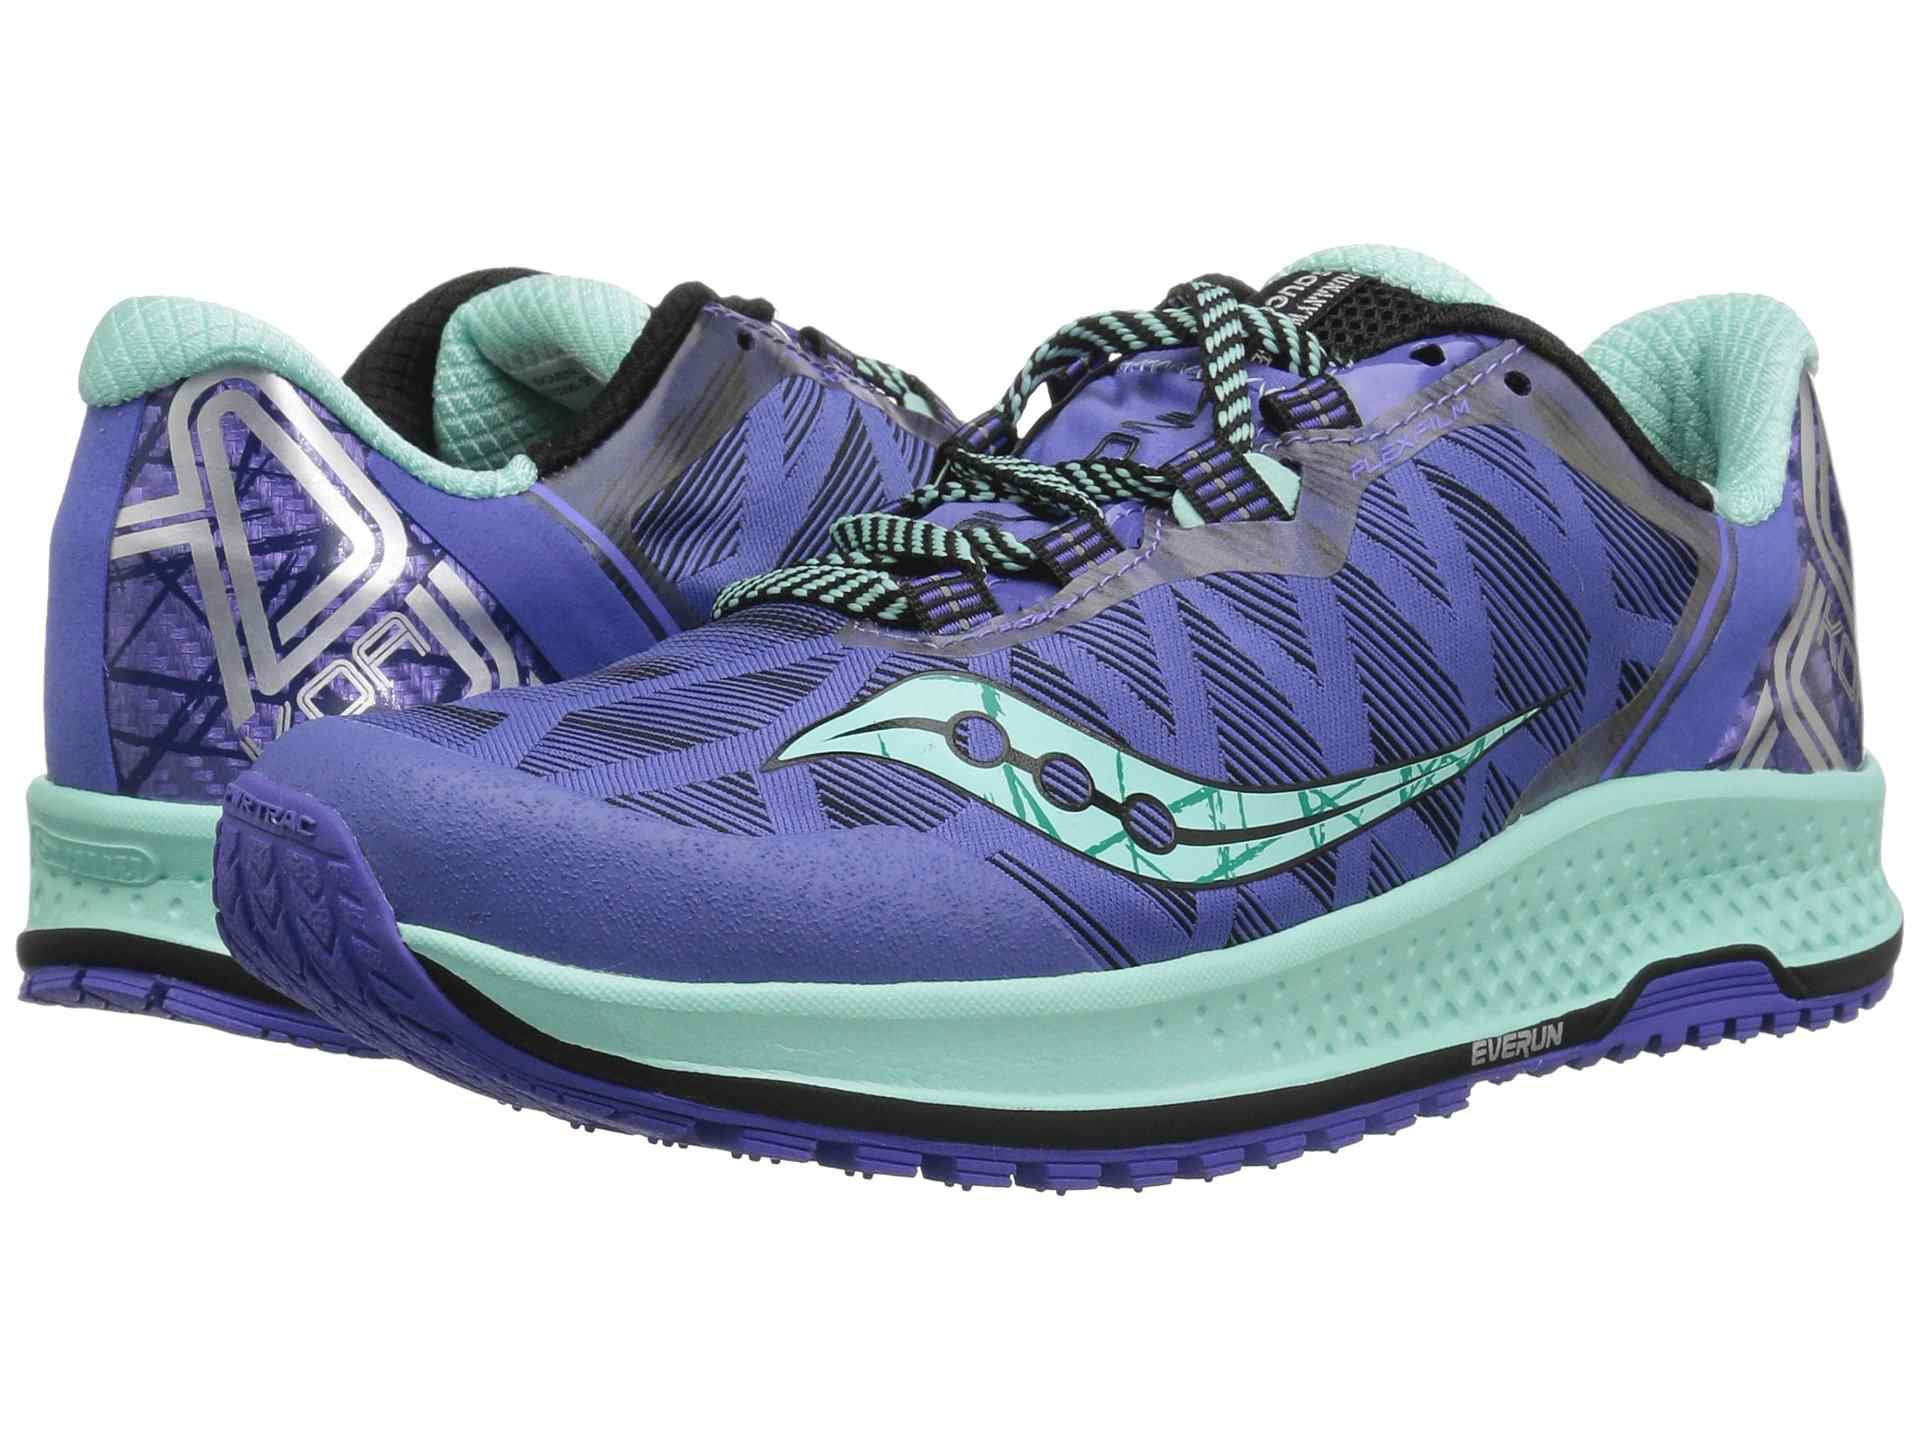 b92f1dcd1a The 9 Best Trail Running Shoes for Women of 2019